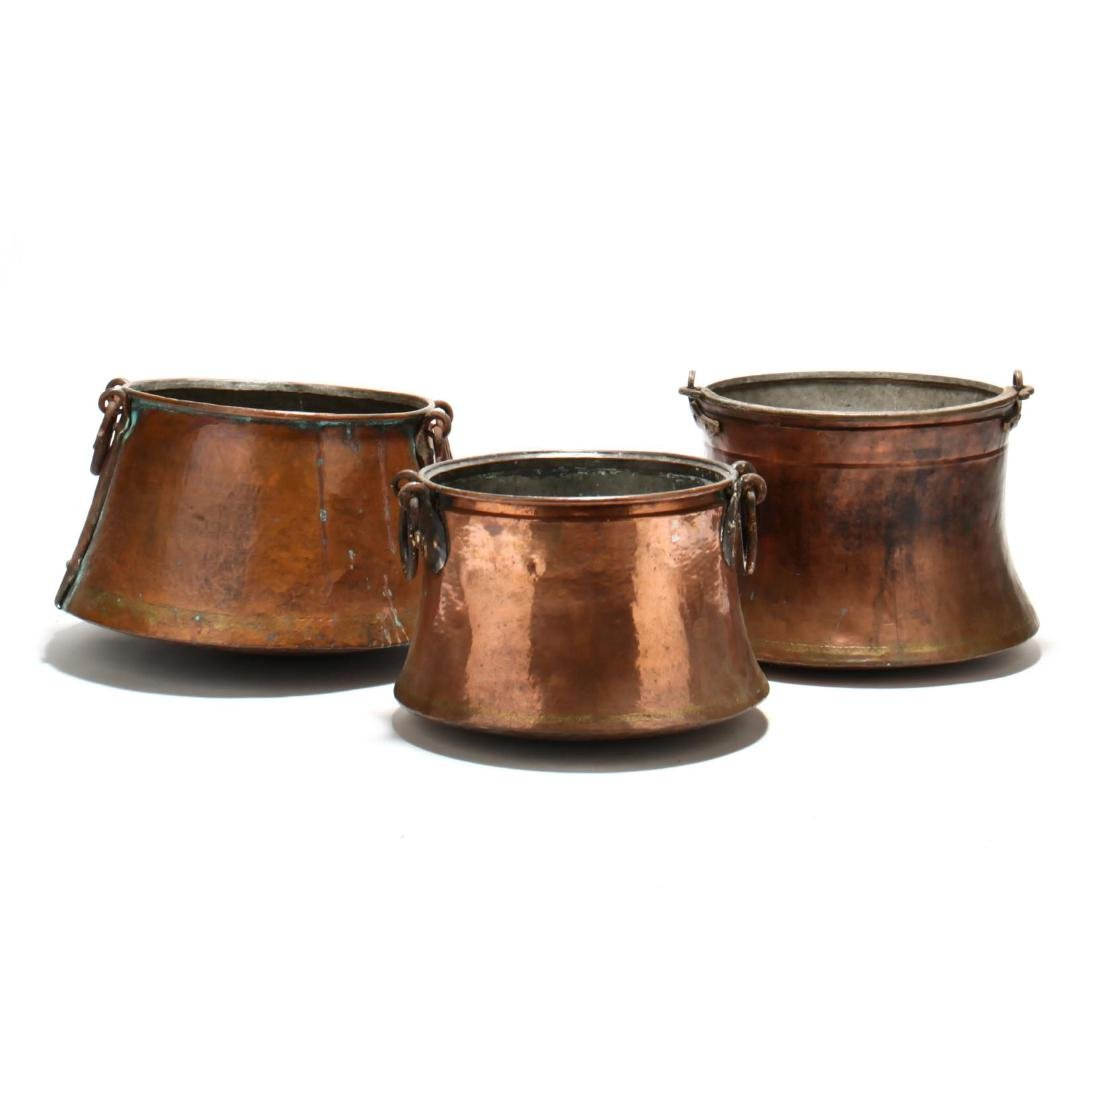 Three Antique Large Copper Cauldrons - 4